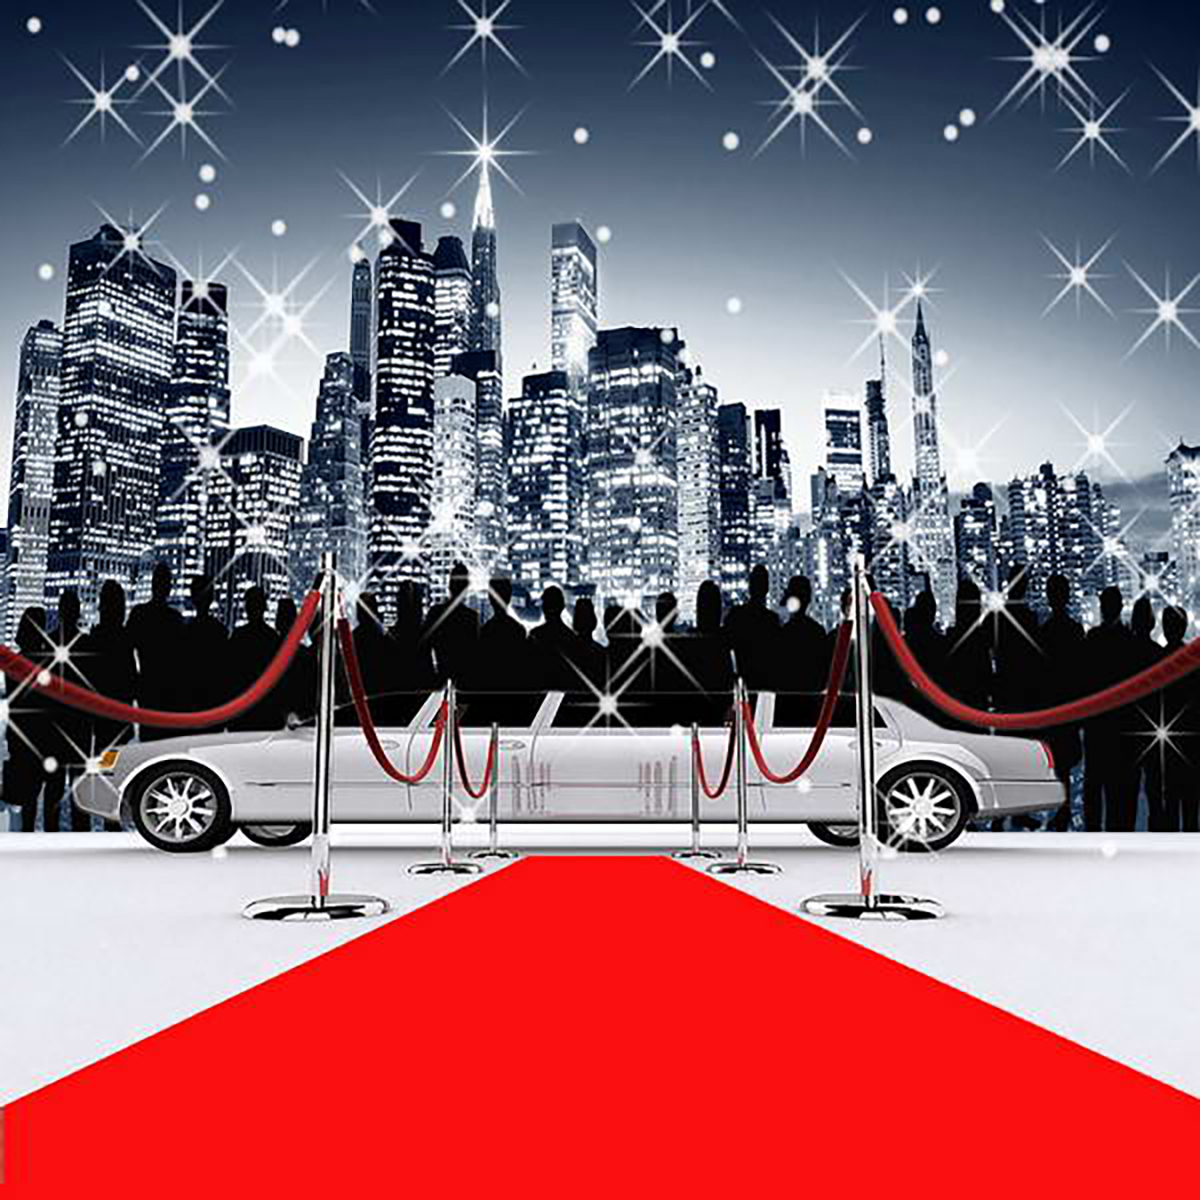 Red Carpet Limousine Bustling City Model photo backdrop Vinyl 1200x1200